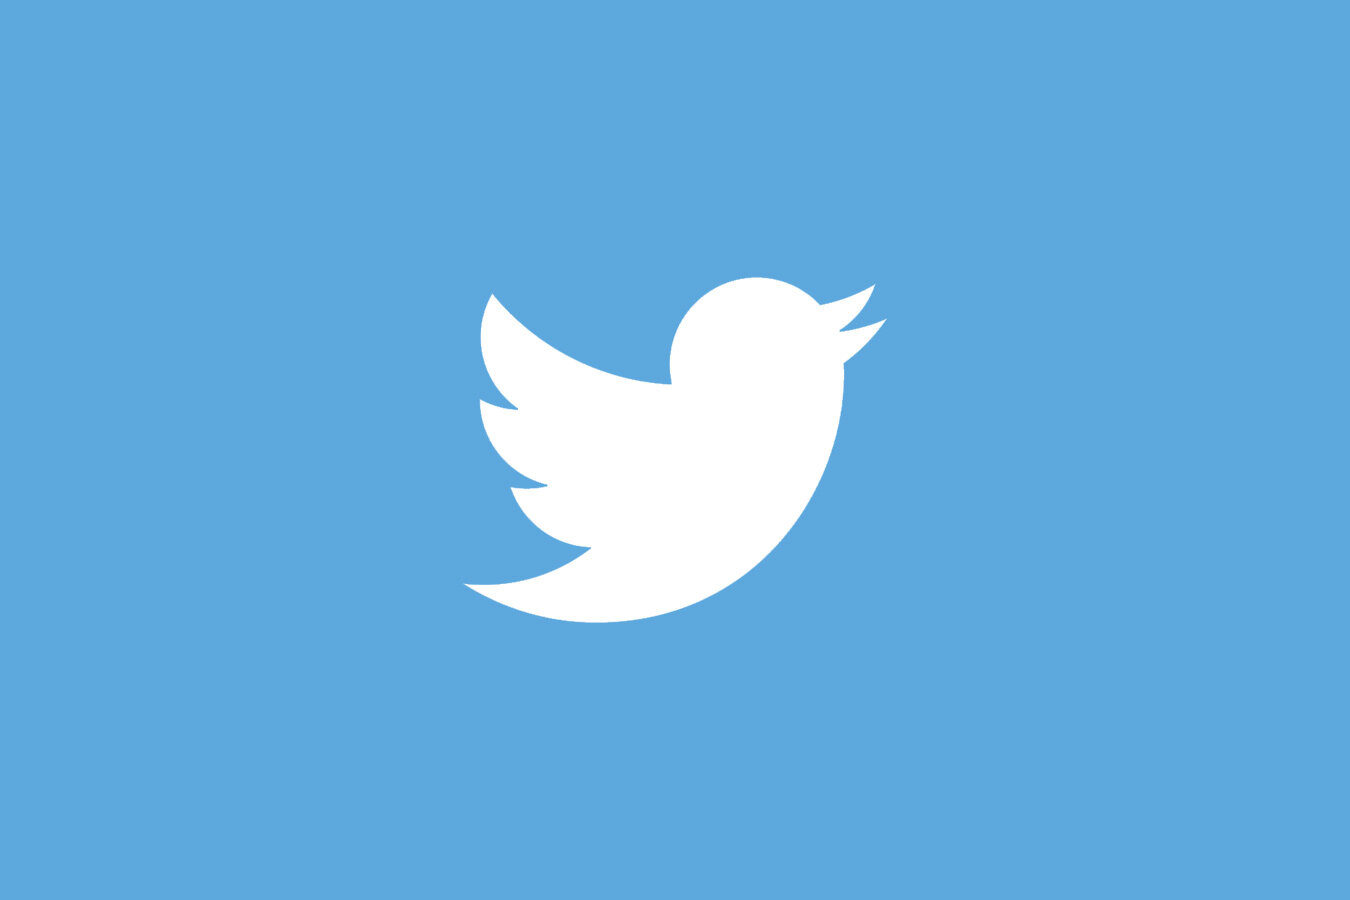 Twitter logo in white on a blue background.